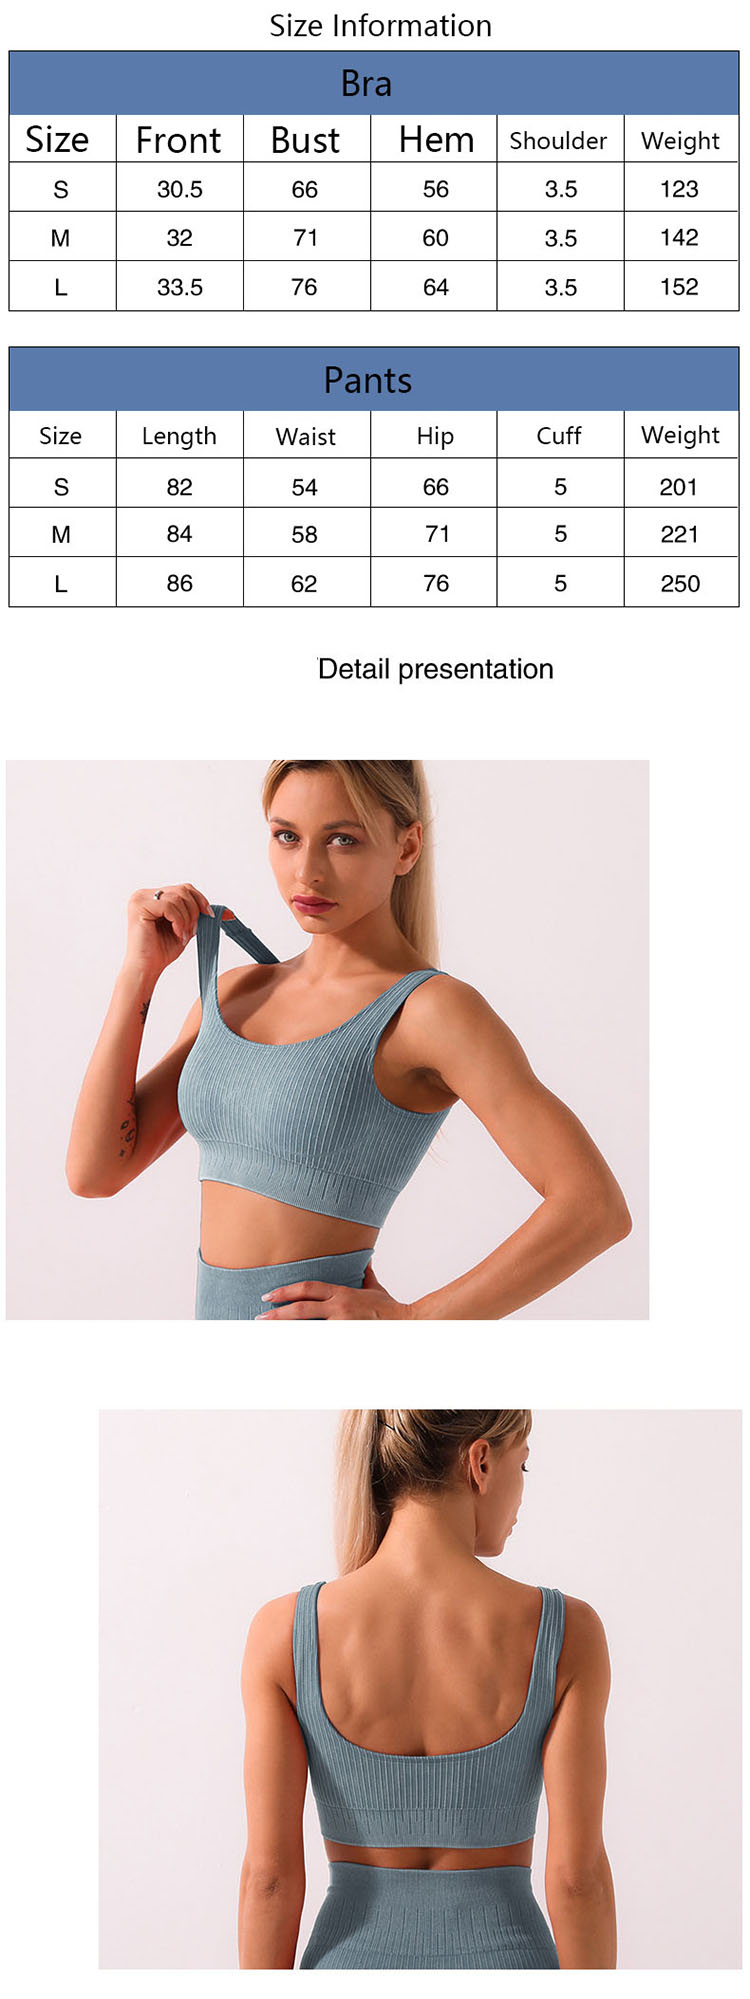 Linen yoga pants is a rare natural fiber, accounting for only 1.5% of the total natural fiber